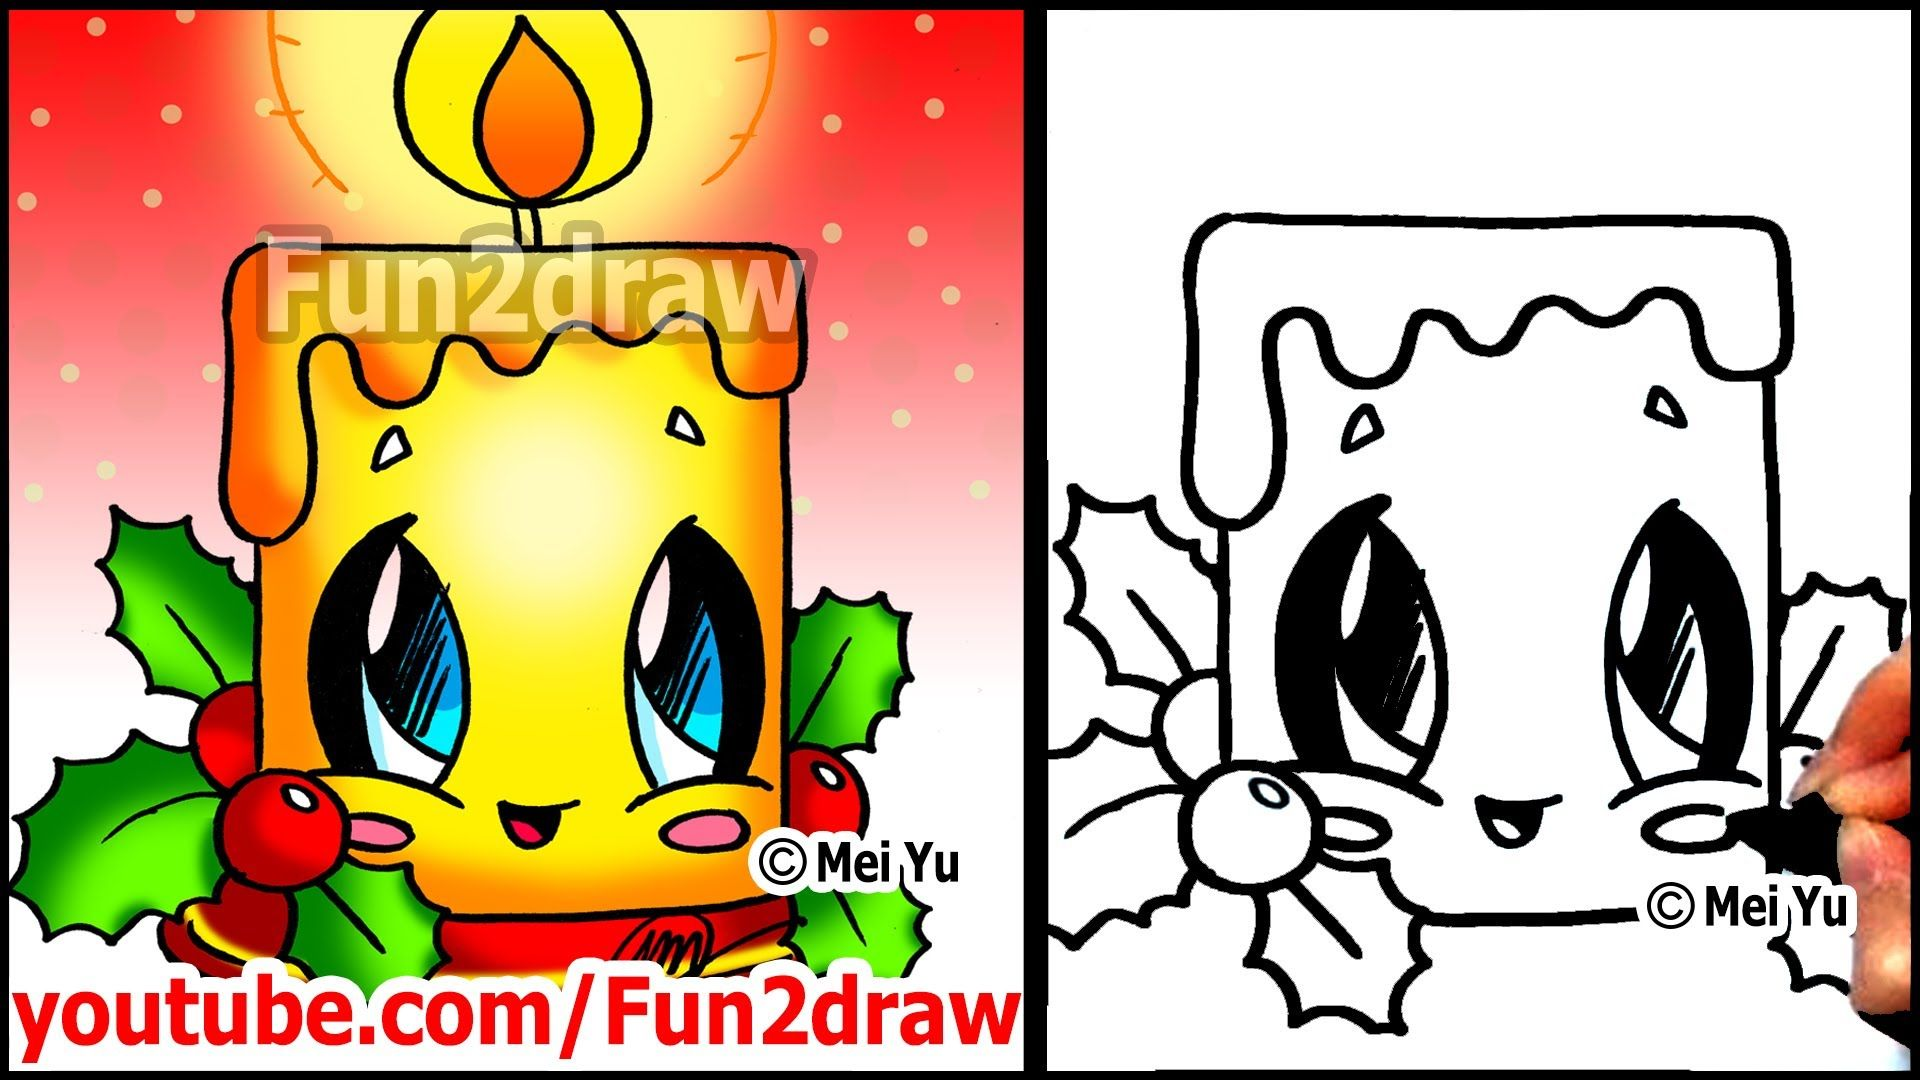 How To Draw Christmas Pictures Candle Holly Decoration Fun2draw Easy Cartoons Easy Disney Drawings Fun2draw Funny Easy Drawings